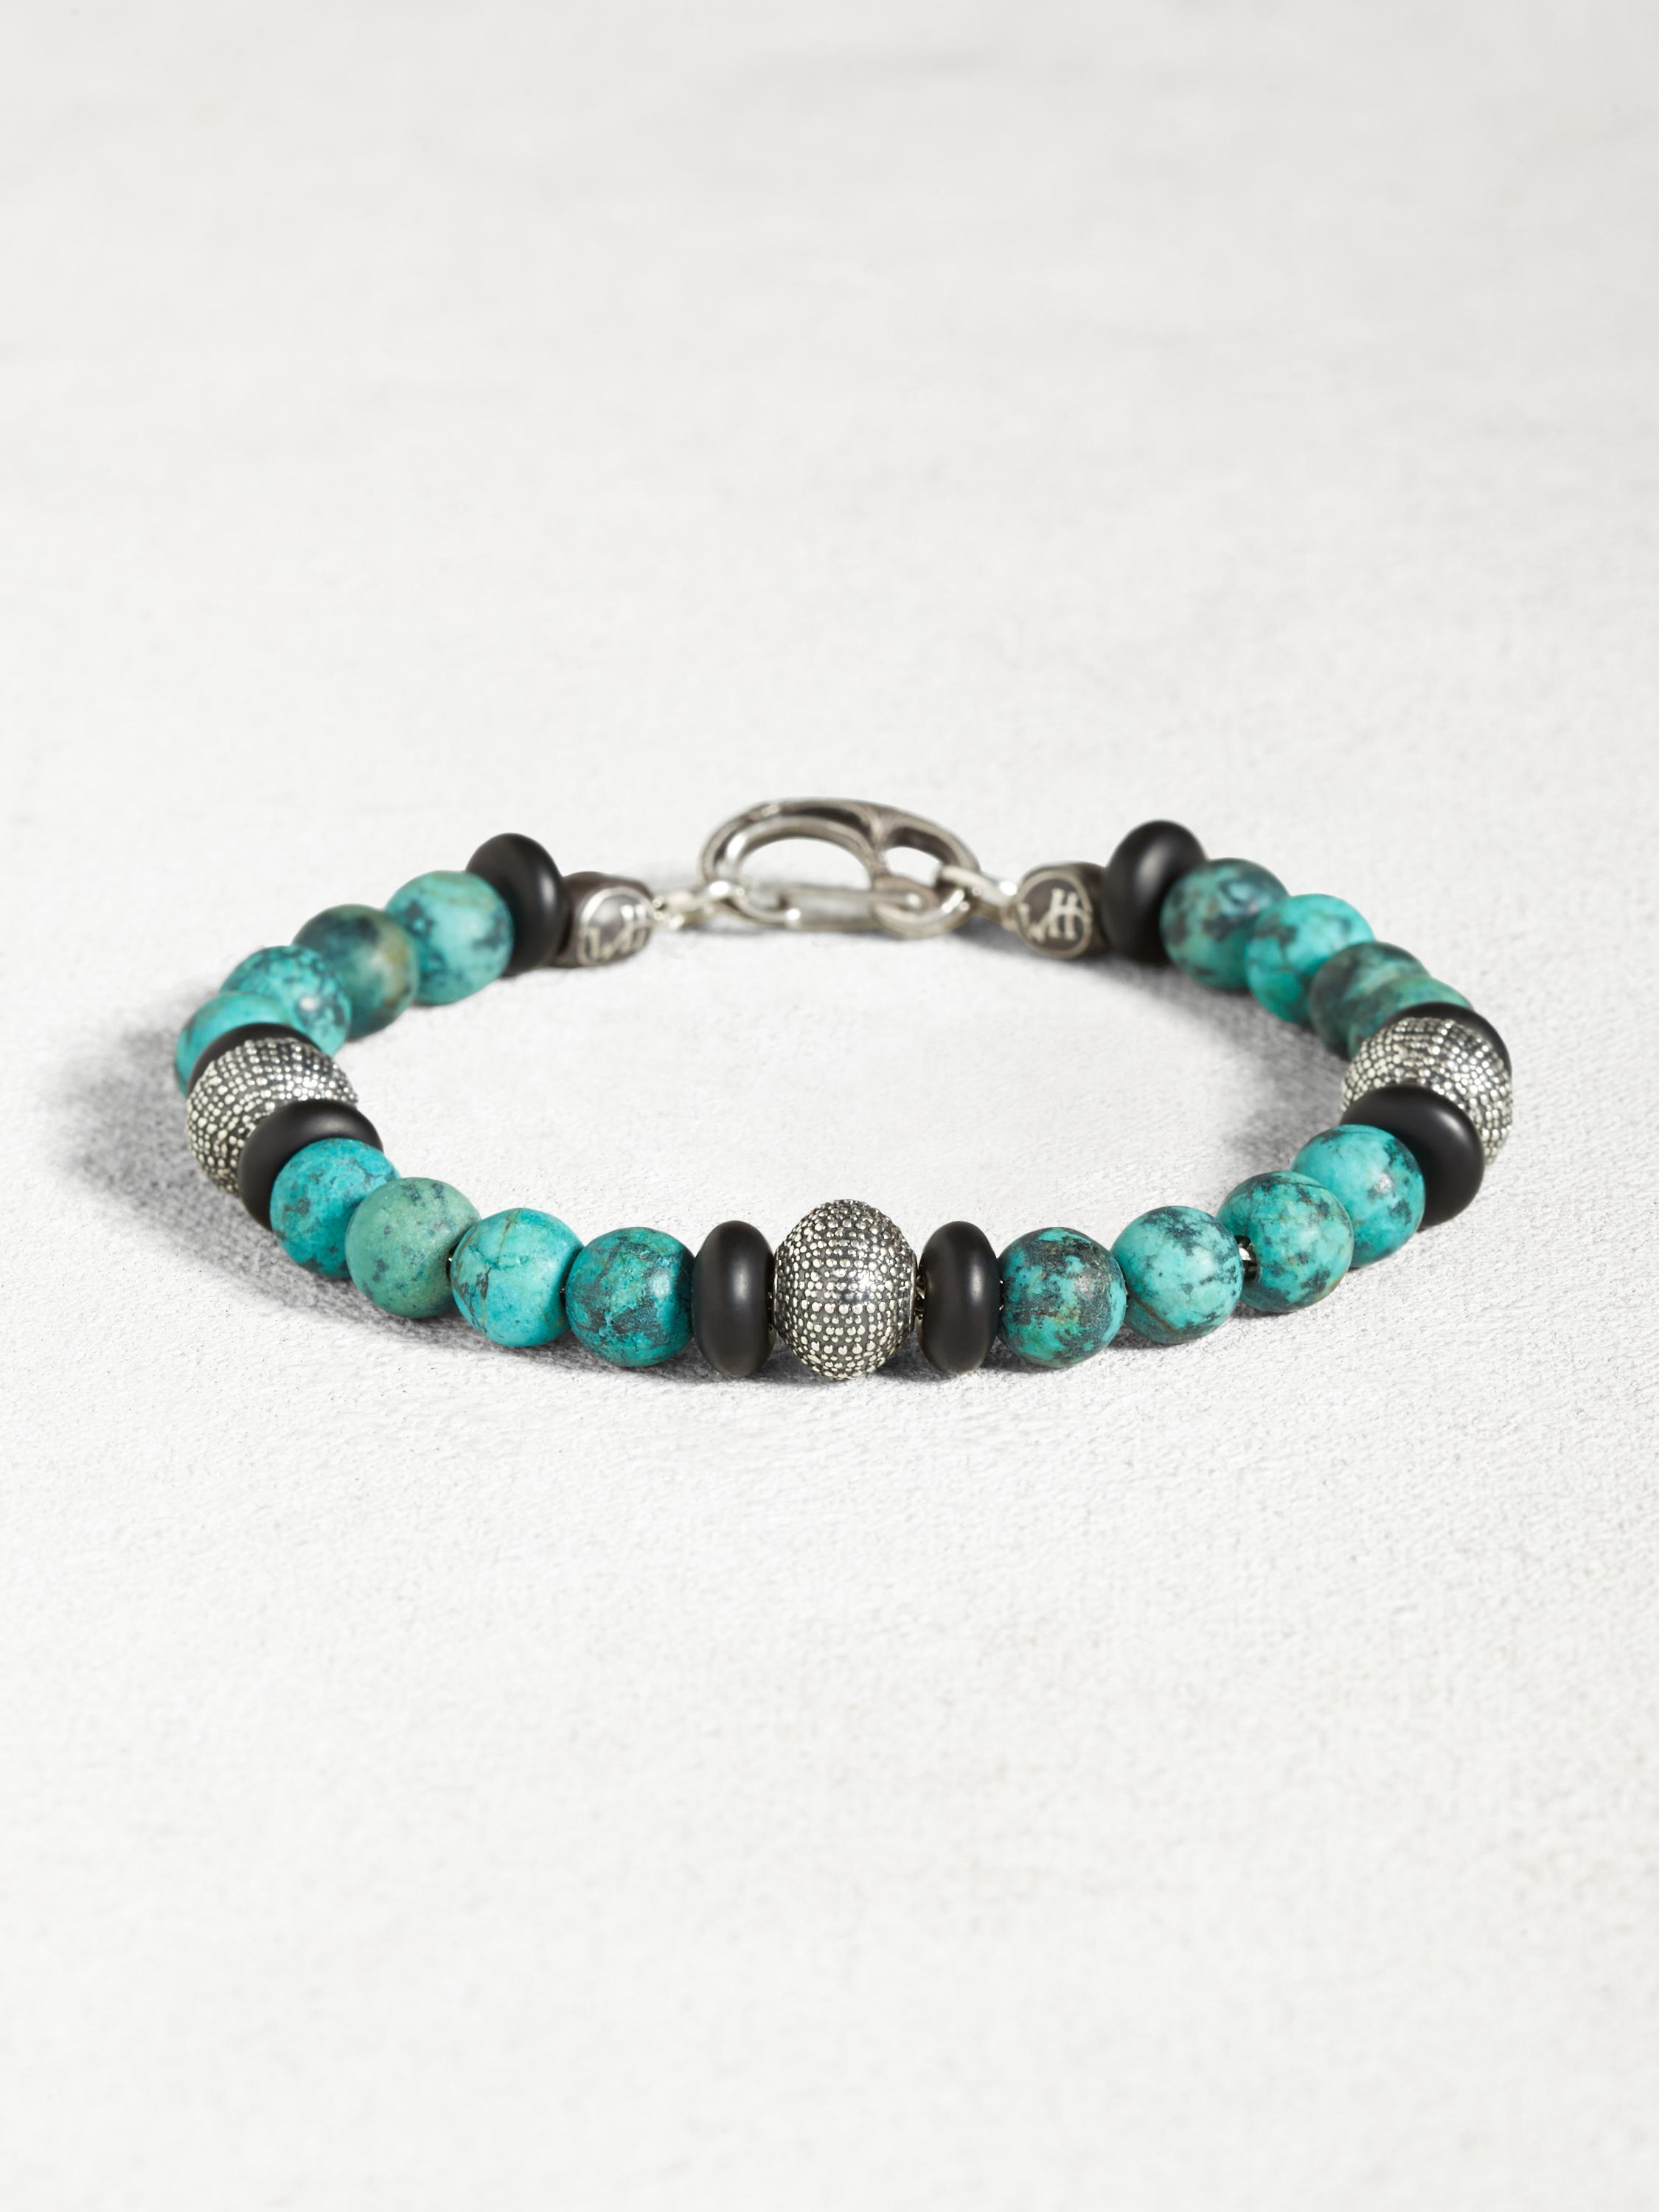 Turquoise & Onyx Bracelet with Sterling Silver Urchins